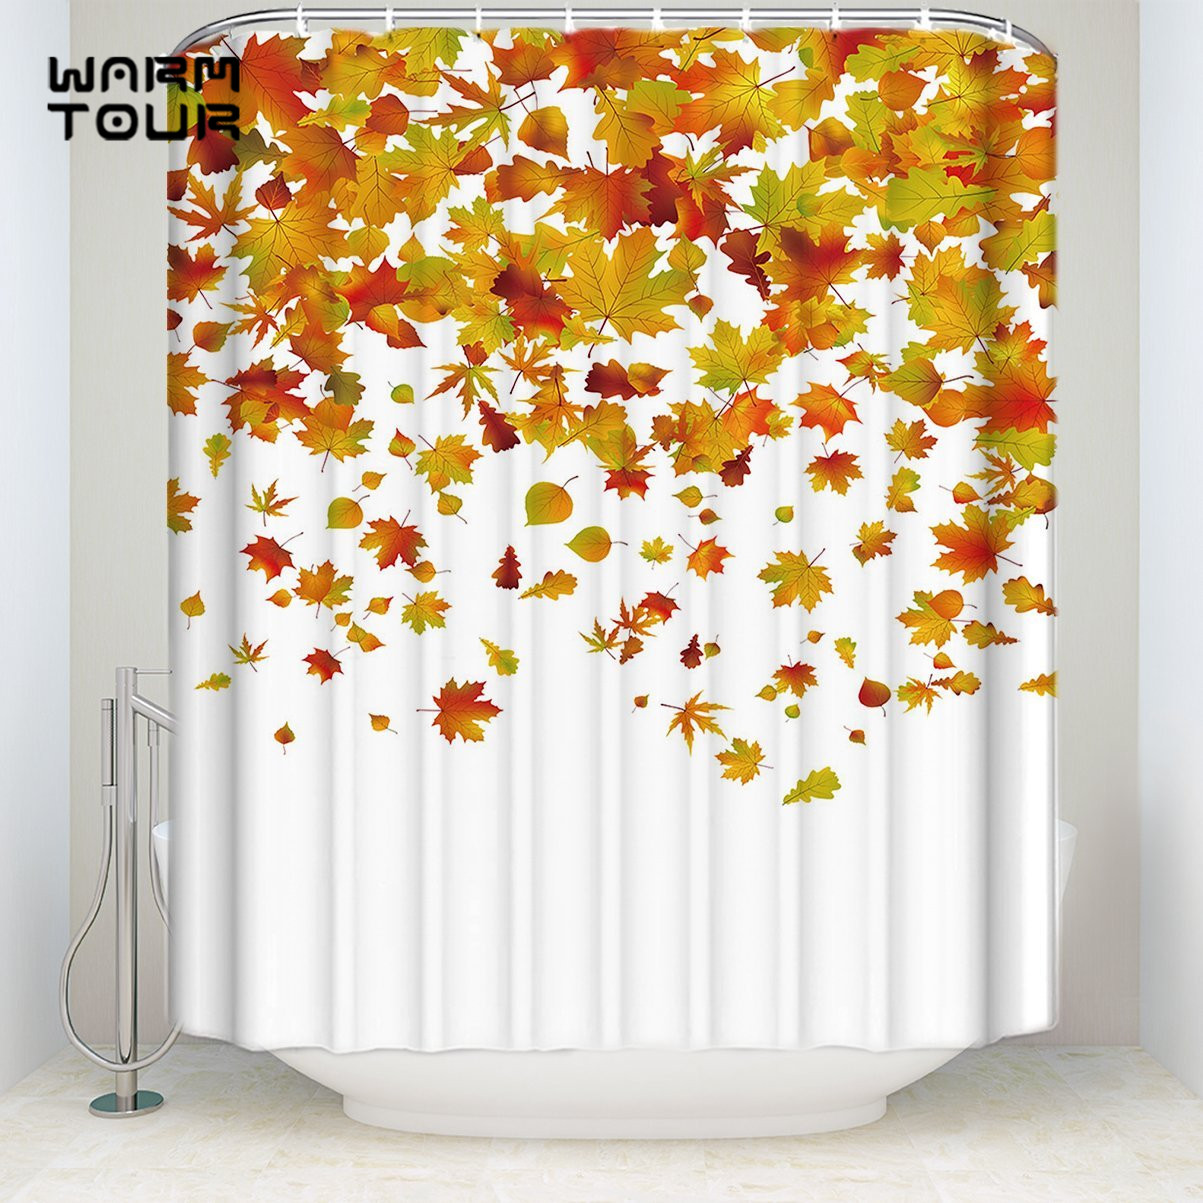 Us 17 38 25 Off Bath Shower Curtains 72 X 72 Inches Fall Maple Leaves Welcome Mildew Resistant Bathroom Decor Sets With Hooks In Shower Curtains